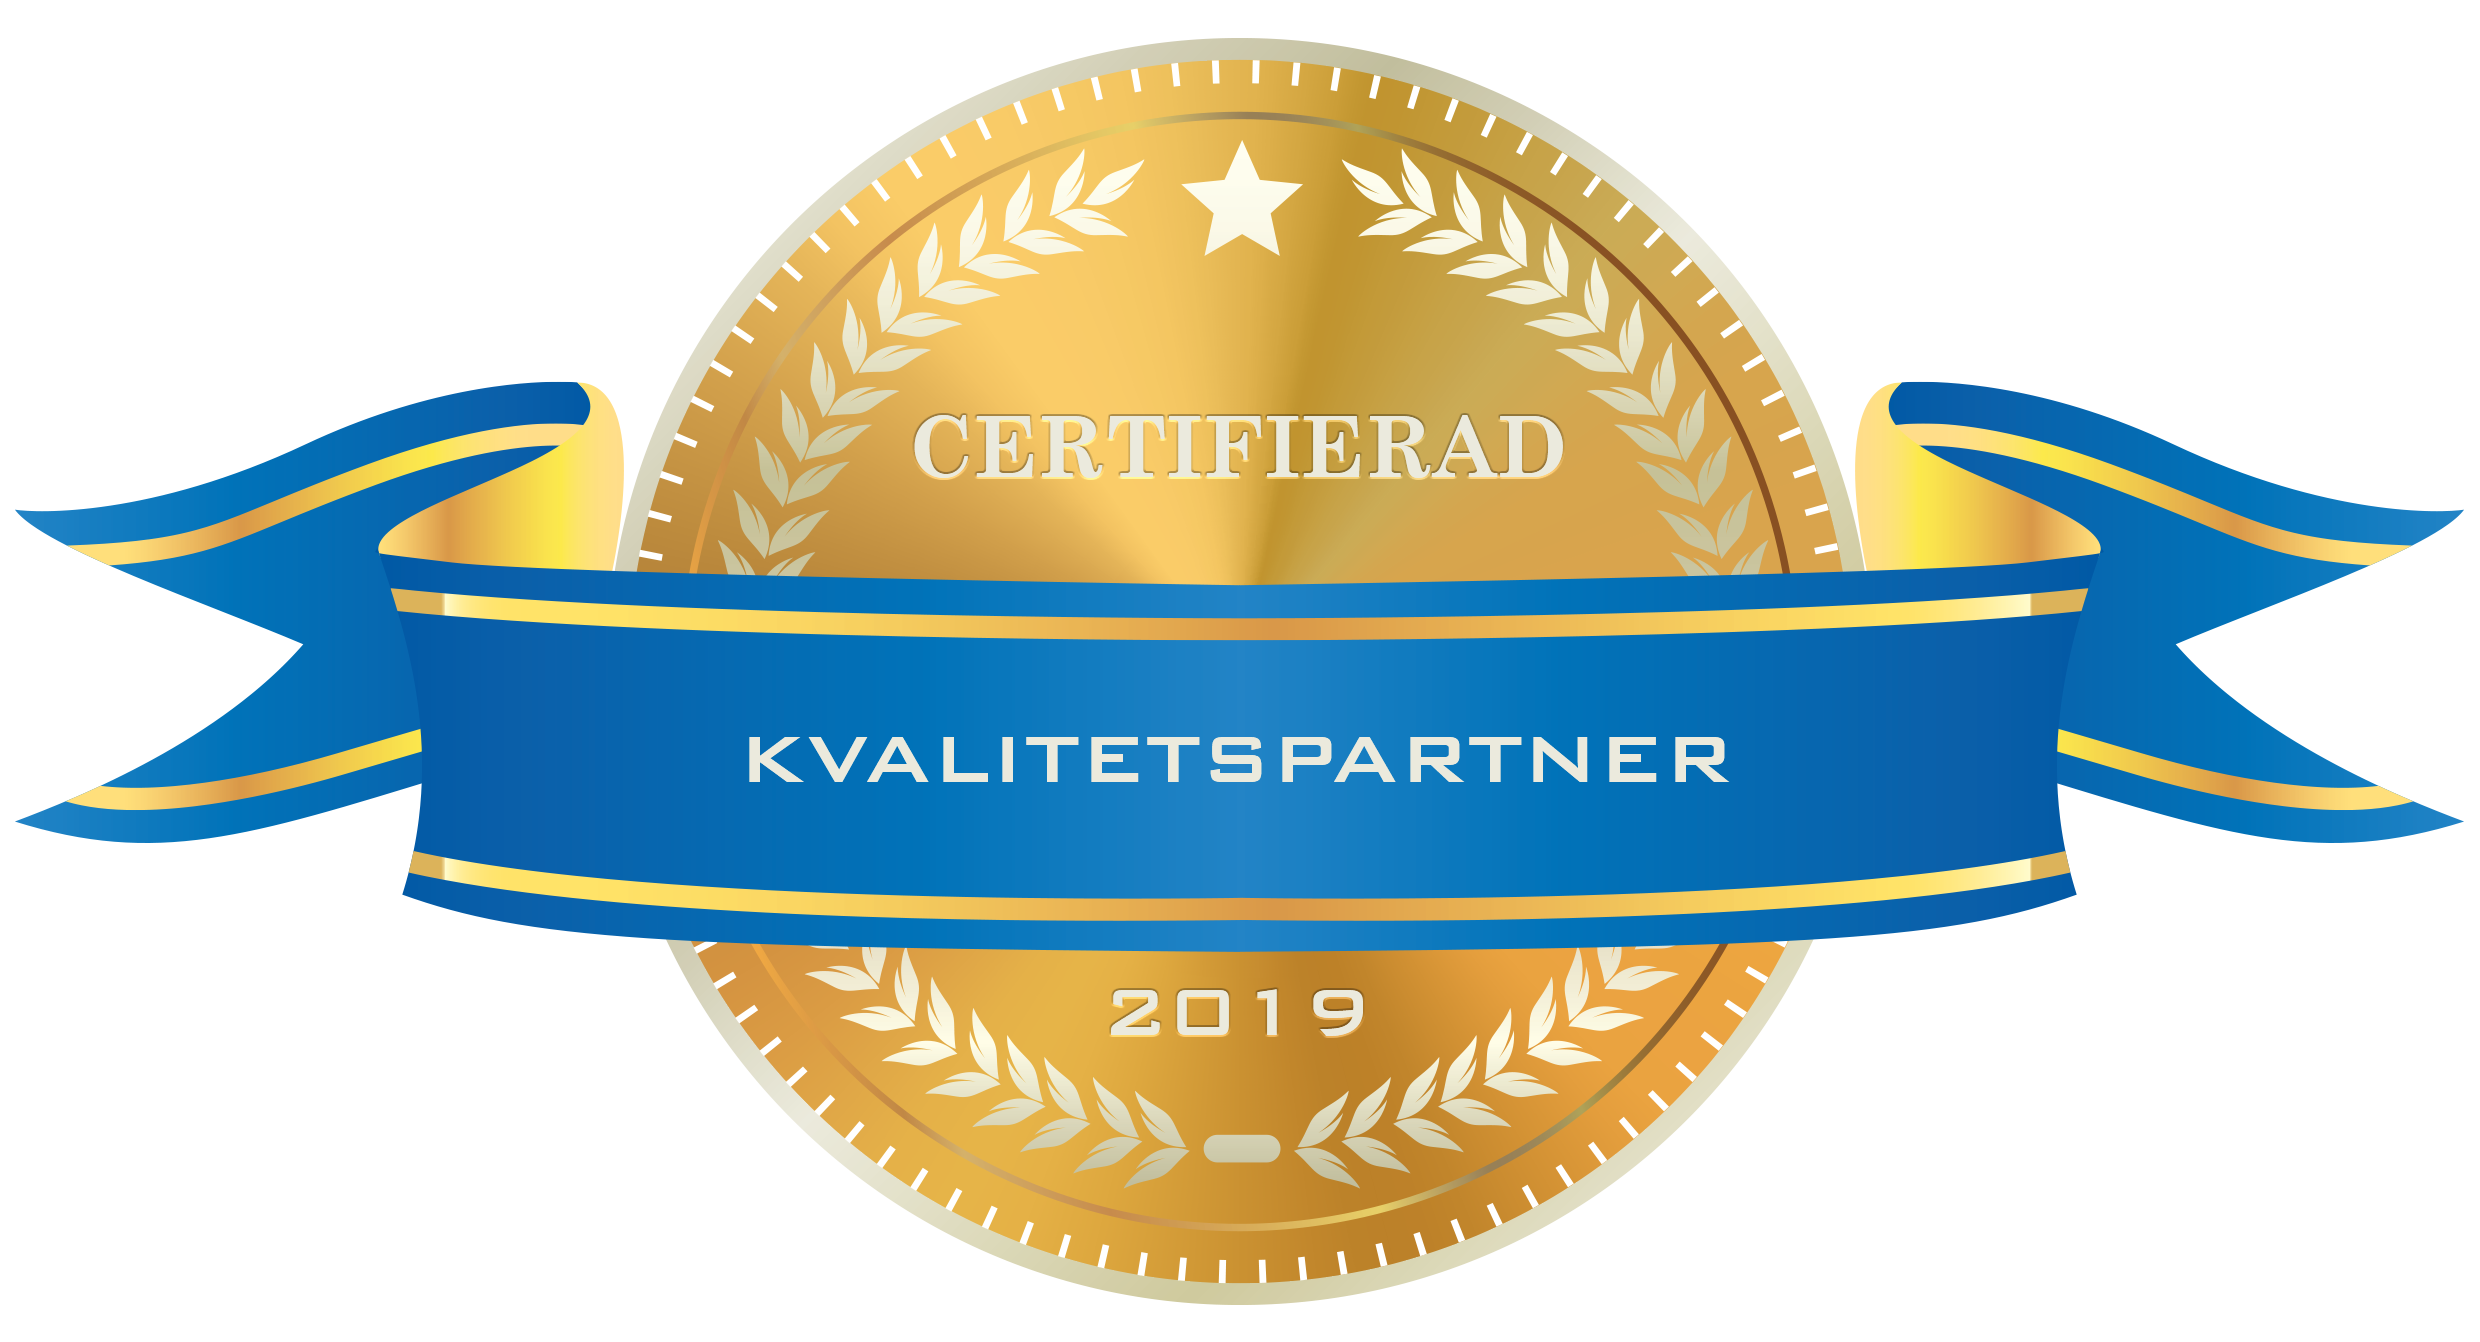 kvalitetspartner sigill